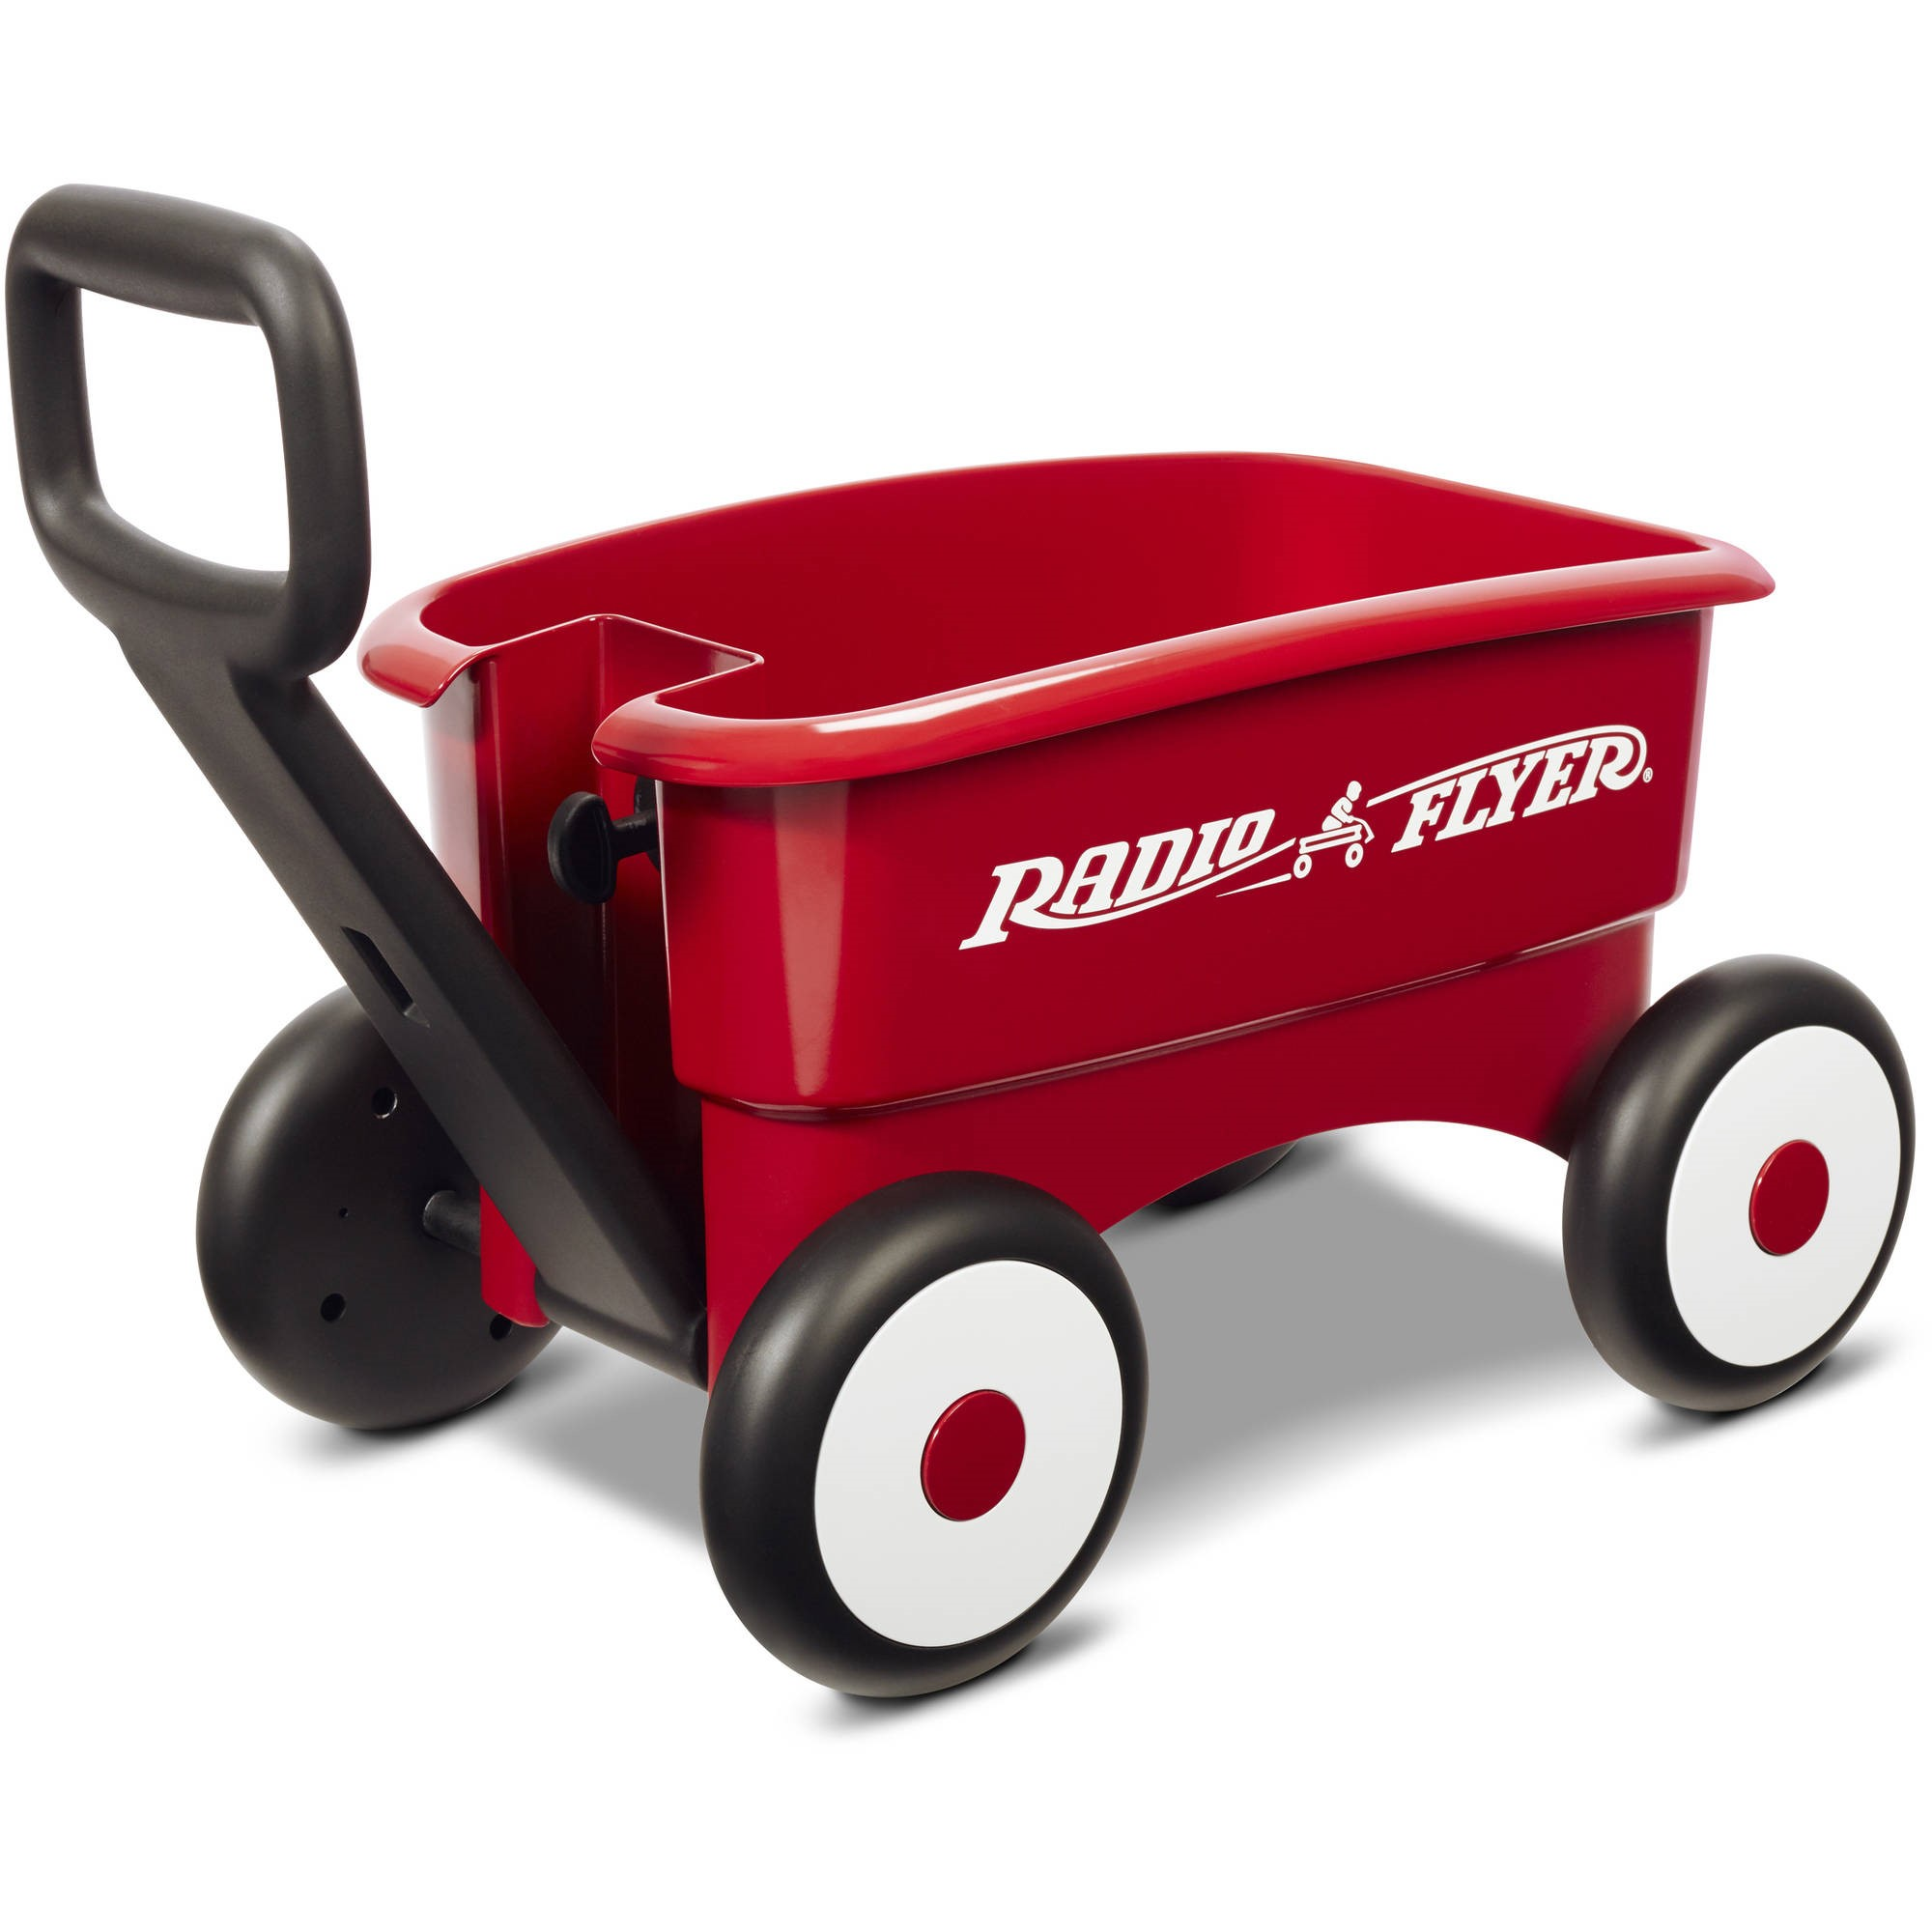 Radio Flyer My 1st 2-in-1 Play Wagon